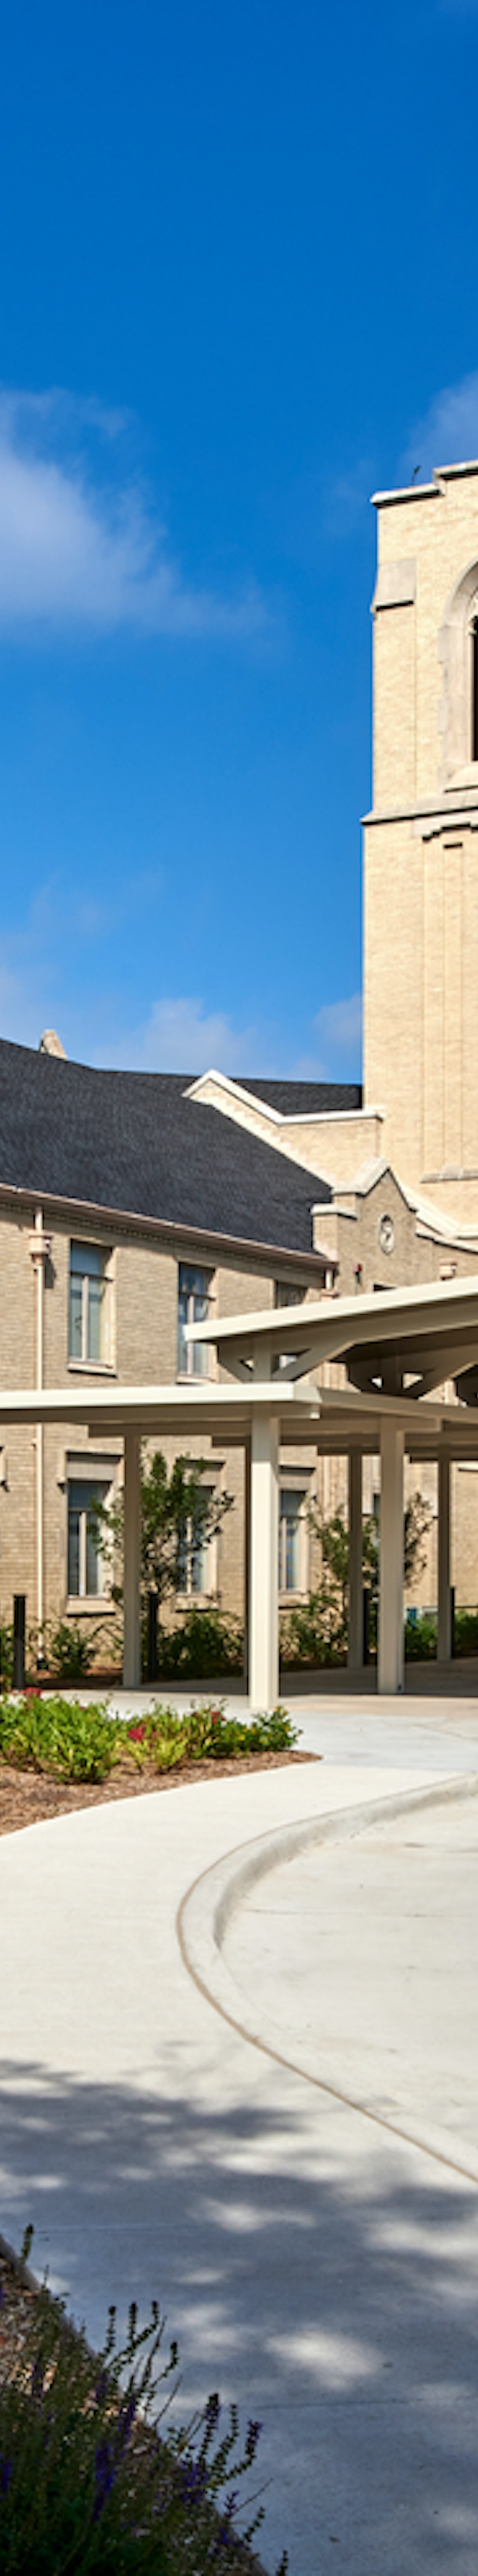 First United Methodist Church Waxahachie Parking Lot And Front Facade